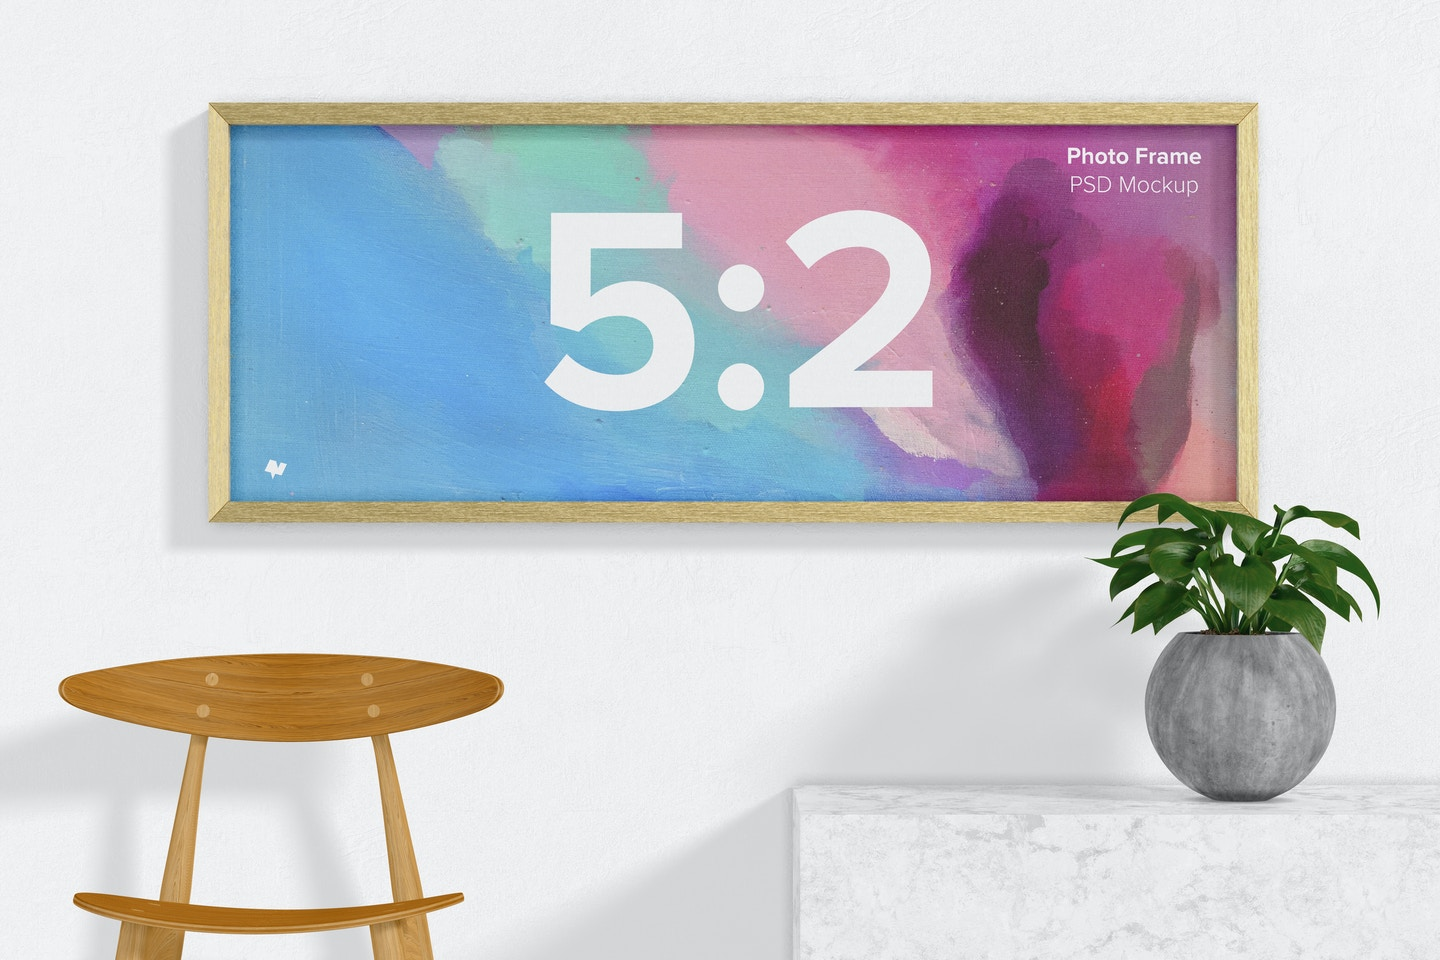 5:2 Photo Frame with Plant Mockup